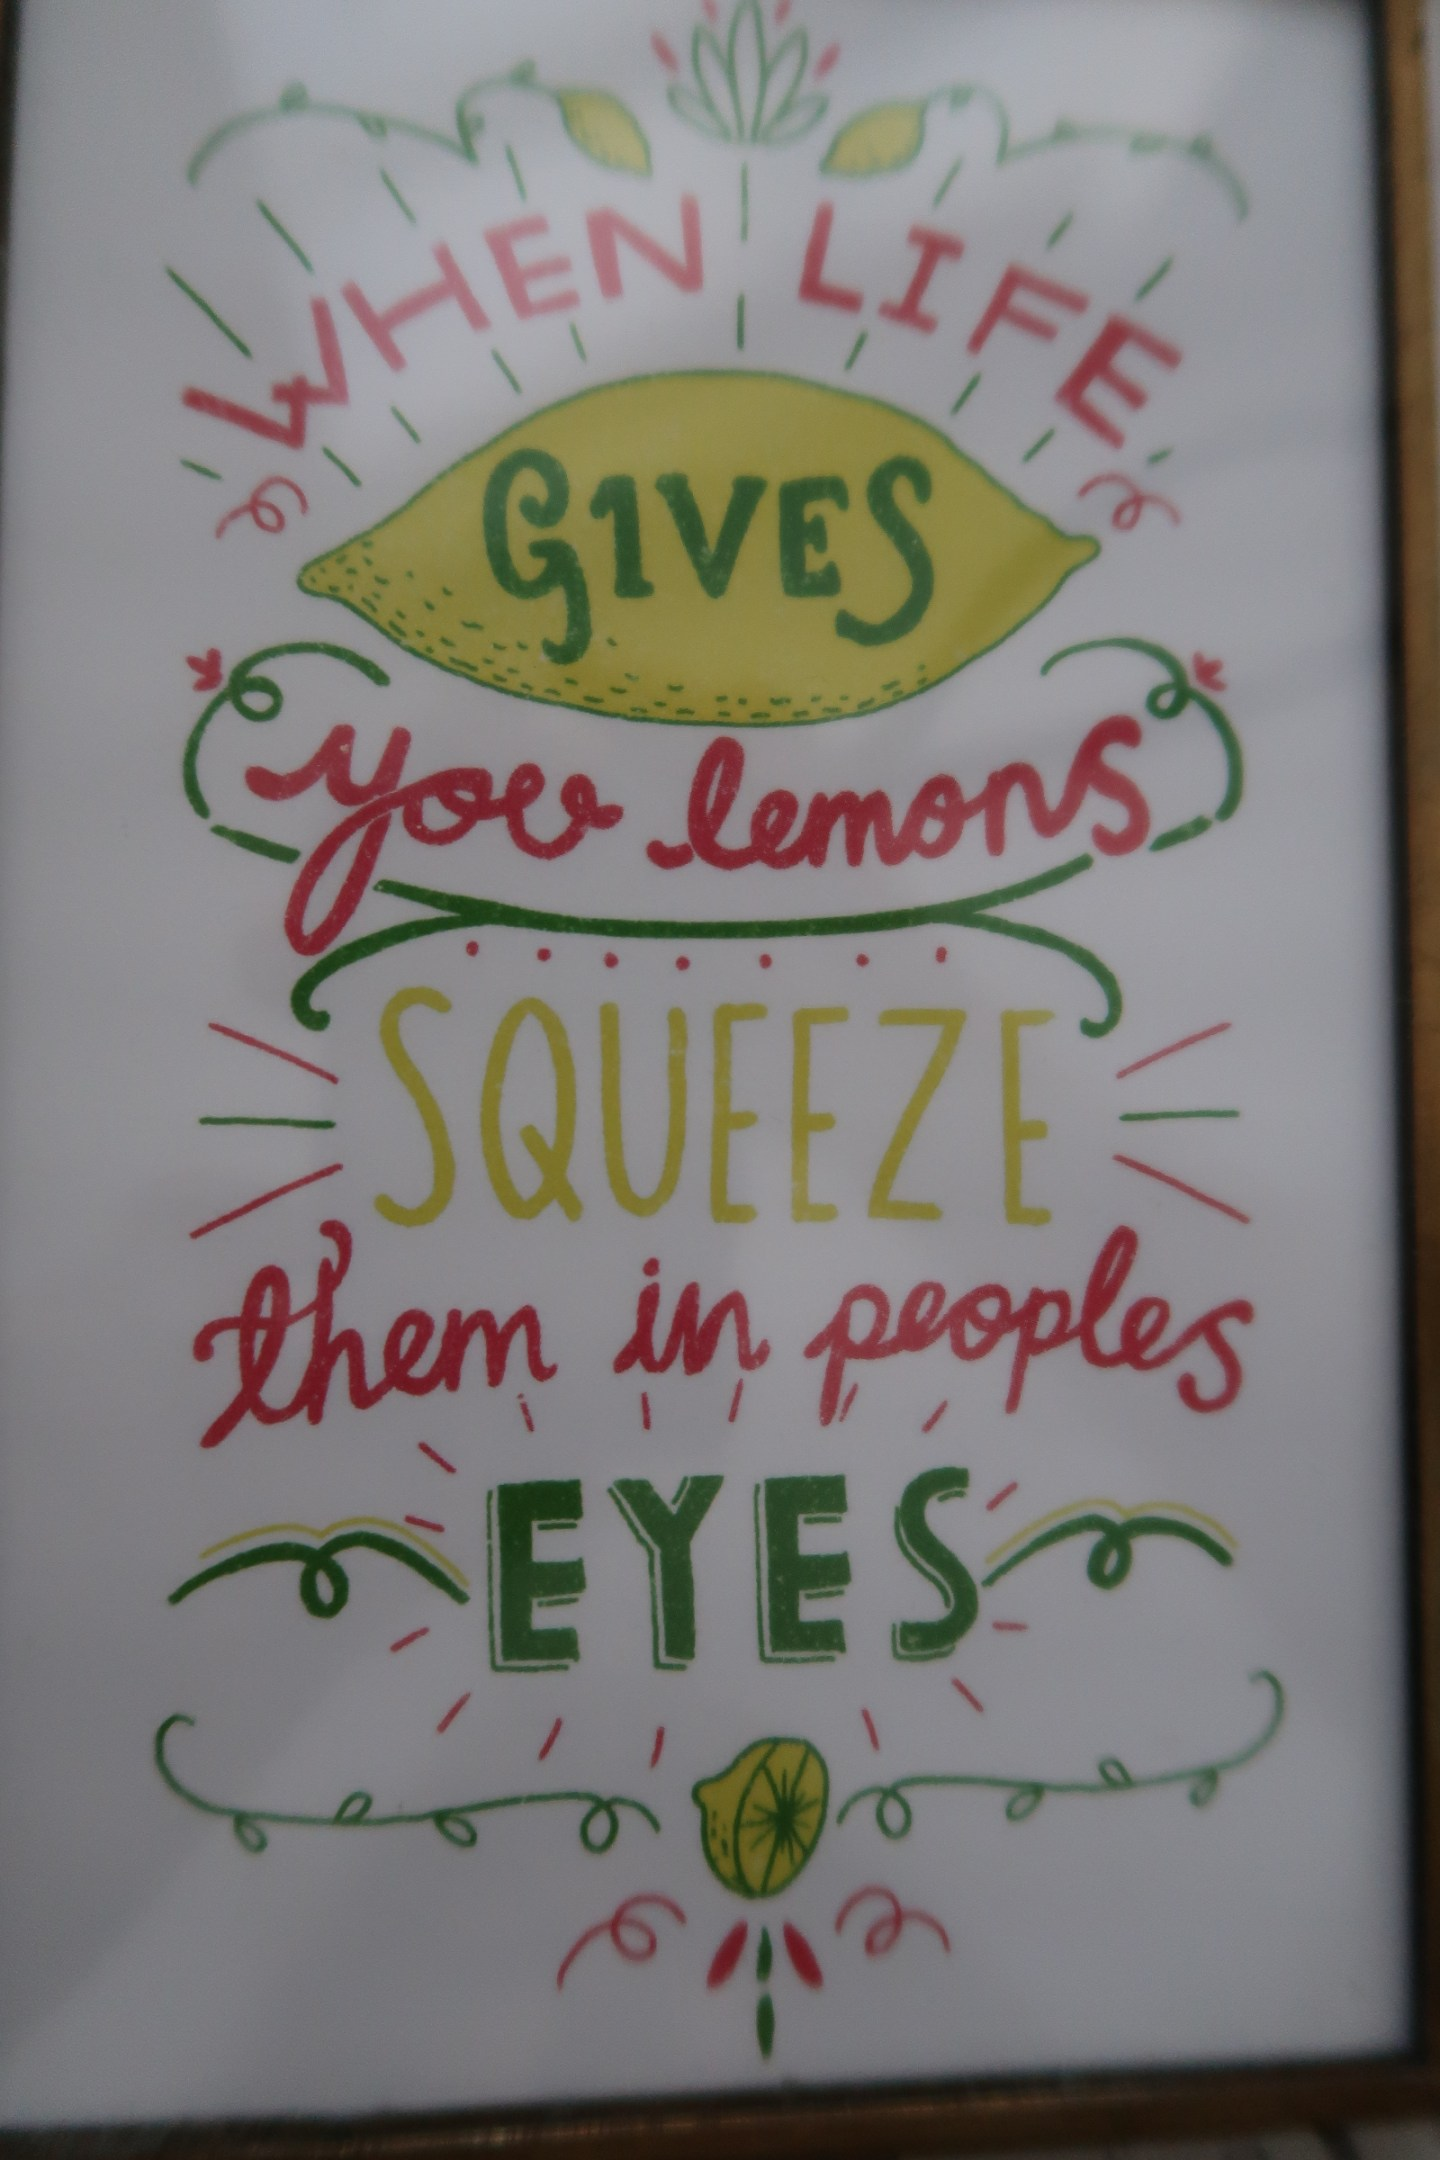 When Life Gives You Lemons – What Should You Do?